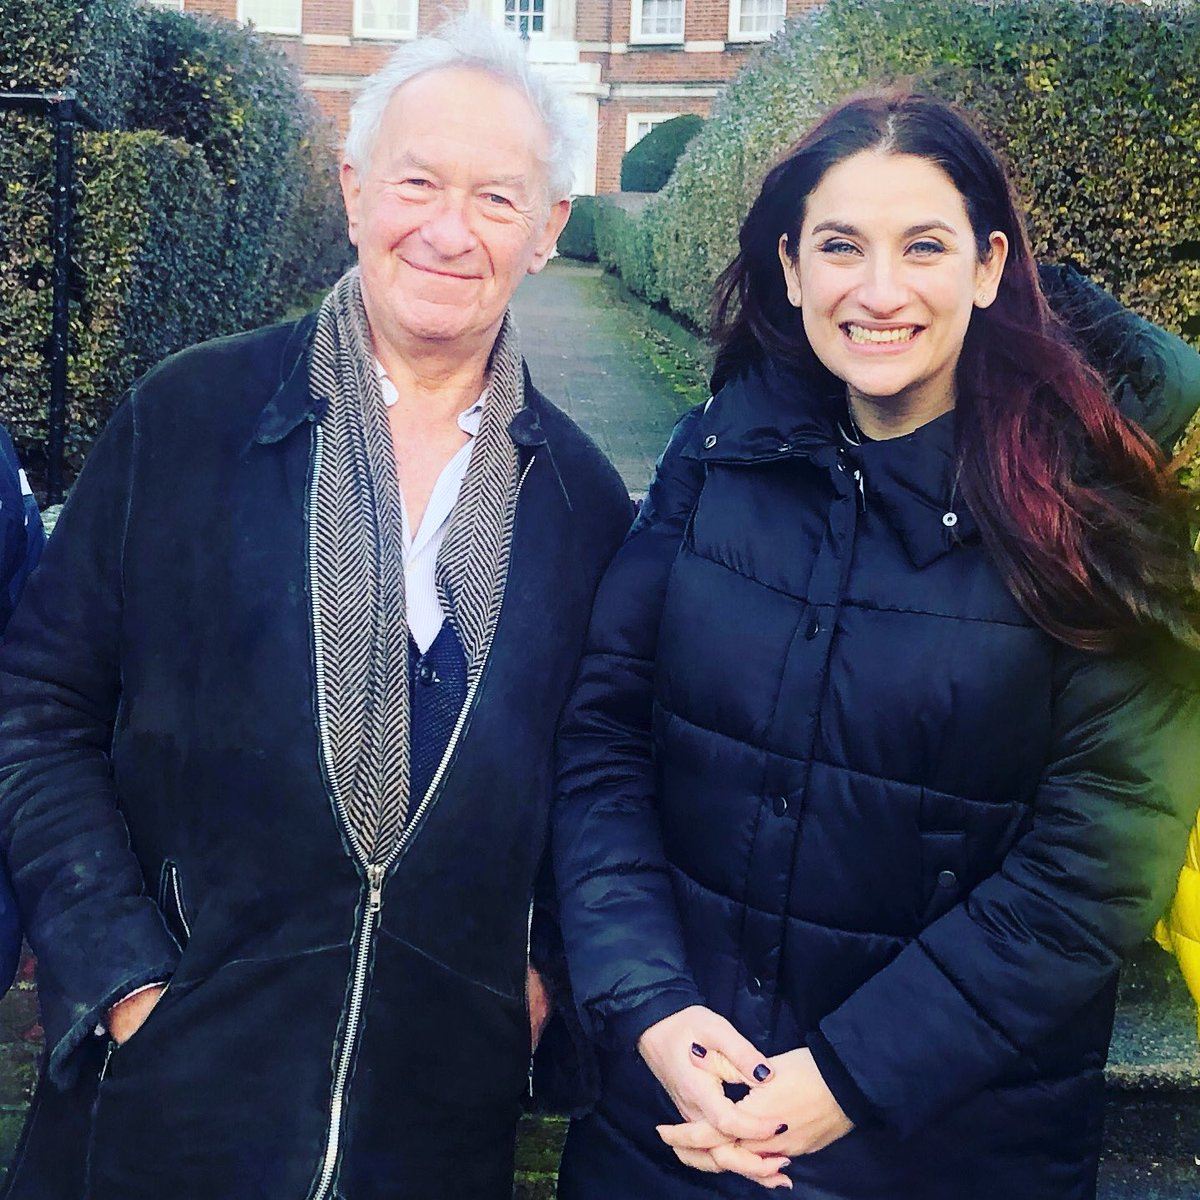 out doorstepping with the brilliant ⁦@lucianaberger⁩ in my old home patch of golders green/ finchley - such a strong campaigner, integrity personified, constituency will have the finest MP imaginable <br>http://pic.twitter.com/fm9I5QHFzZ